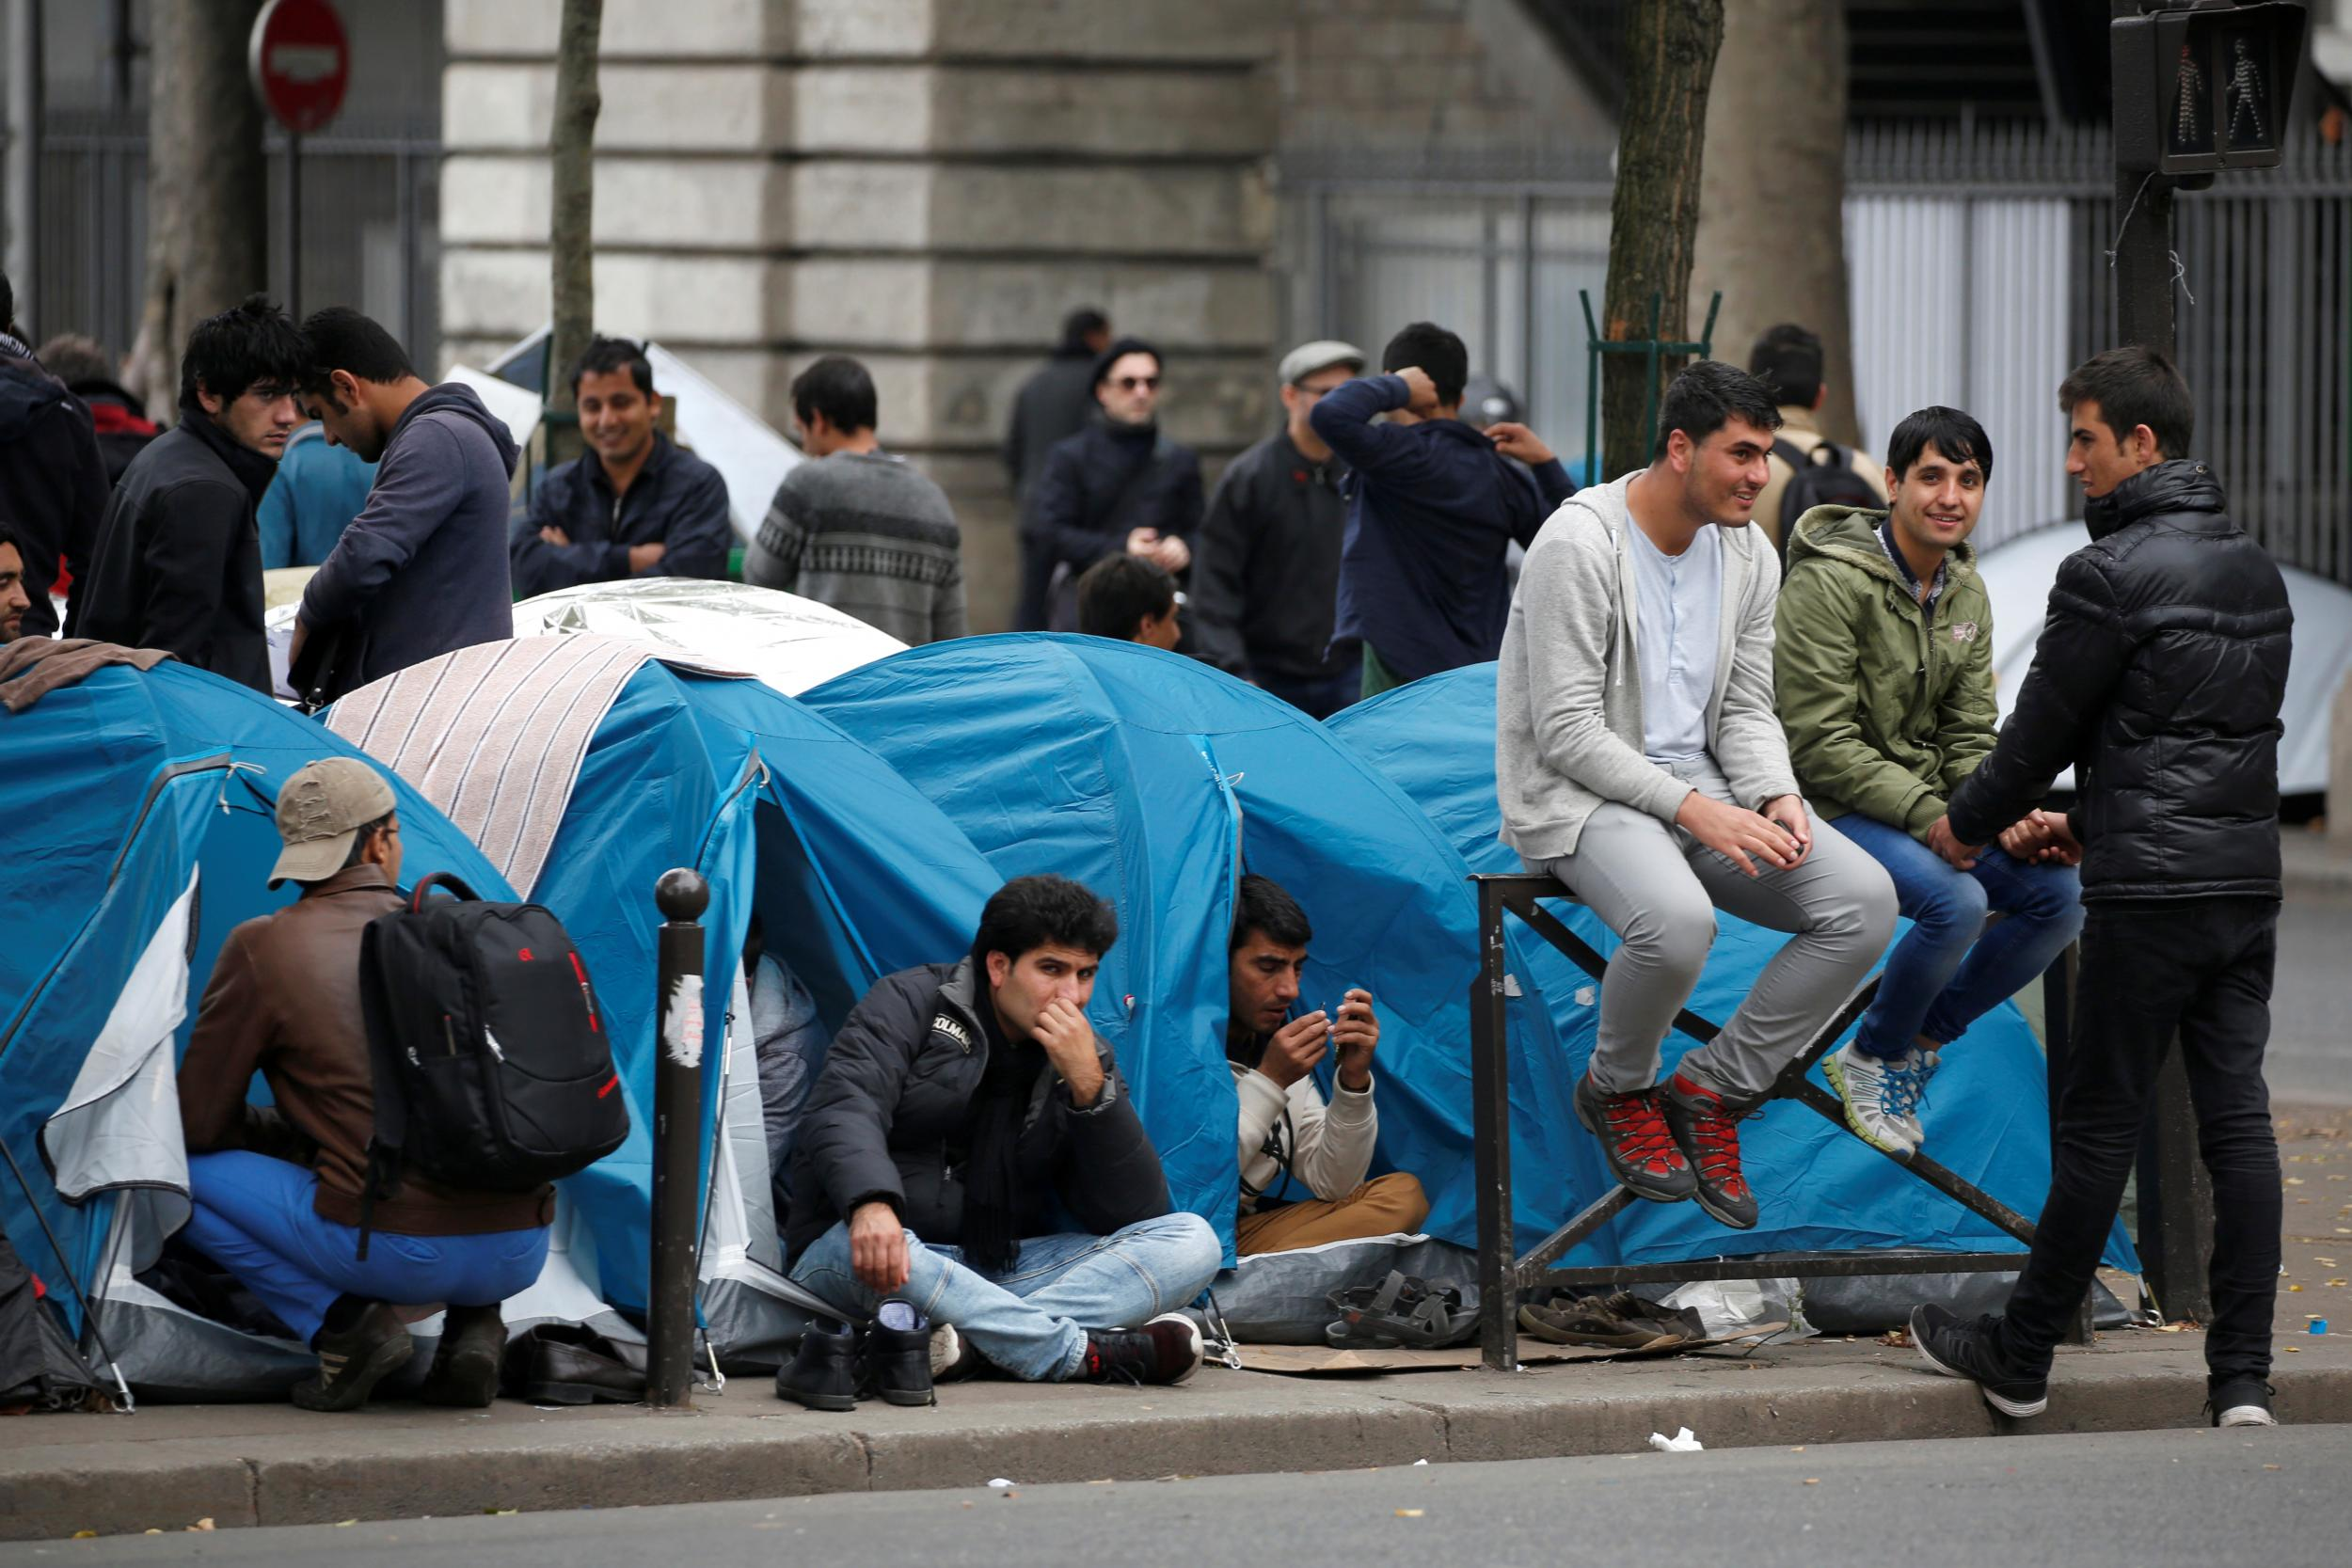 France:  The cycle never ends in France.  1,400 migrants are back after being evacuated just weeks ago from a Paris street.